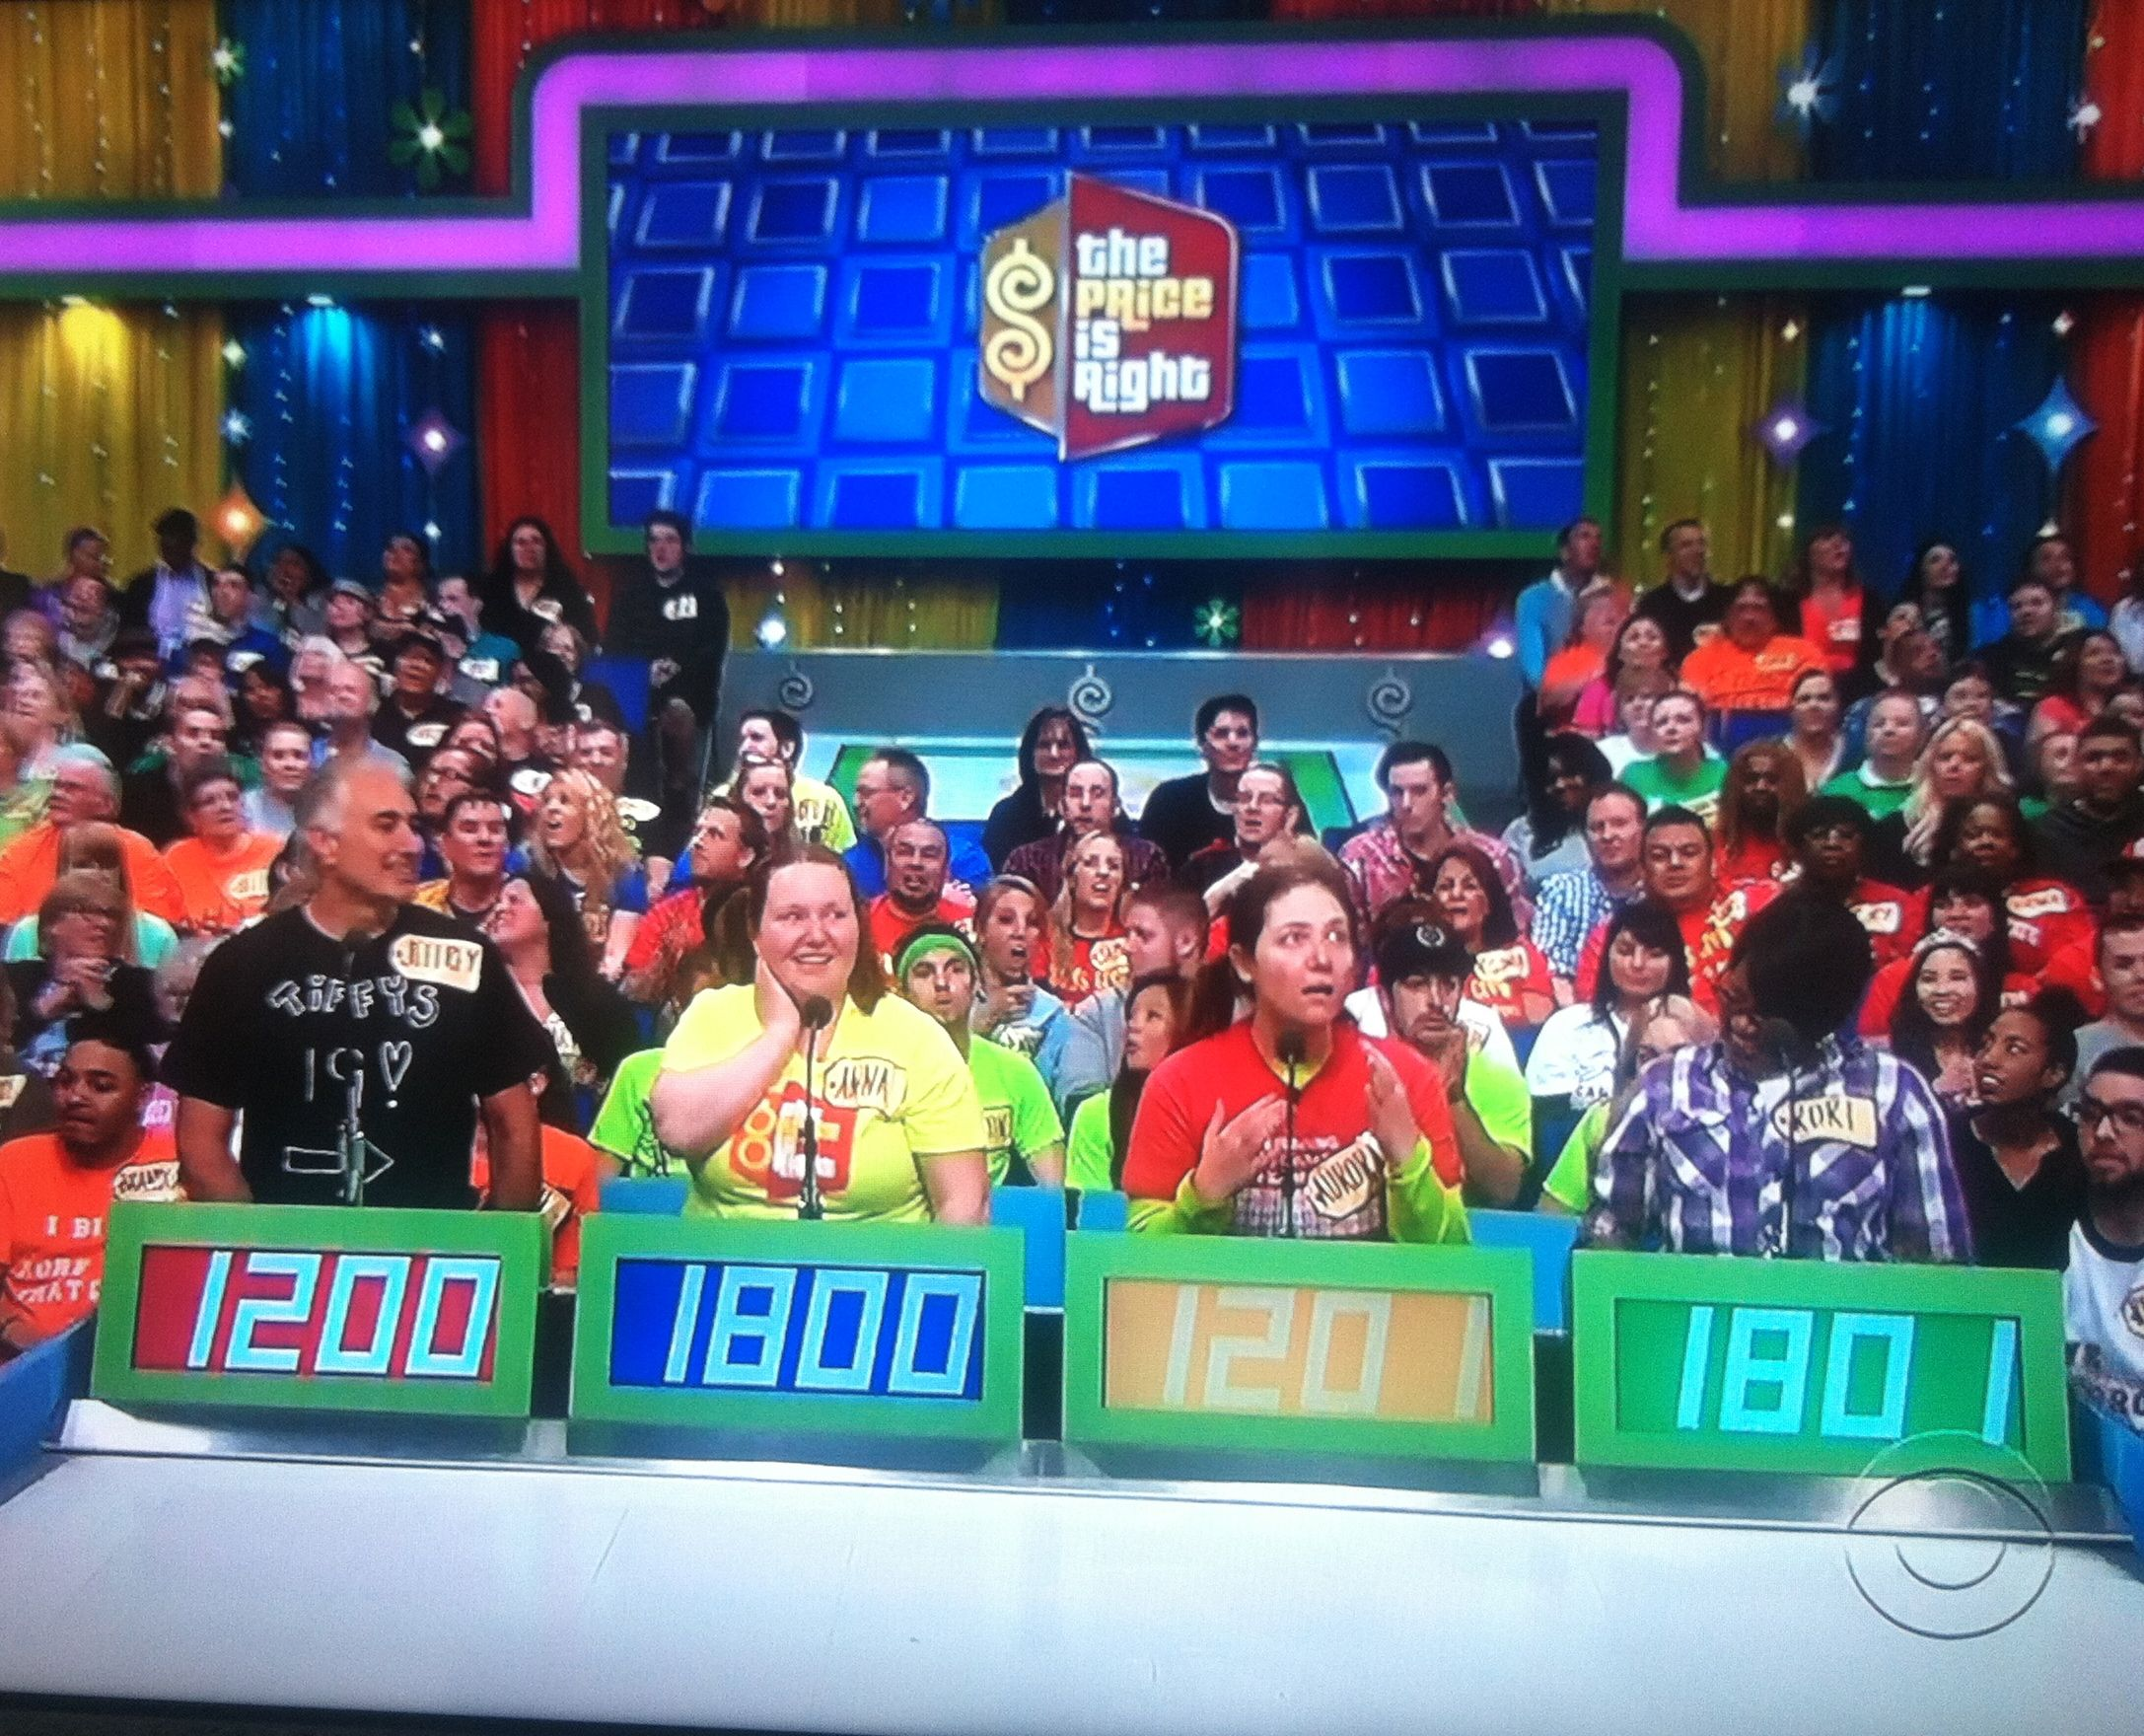 Aurora behind her podium in disbelief that she's the next person up to contestant's row on The Price is Right